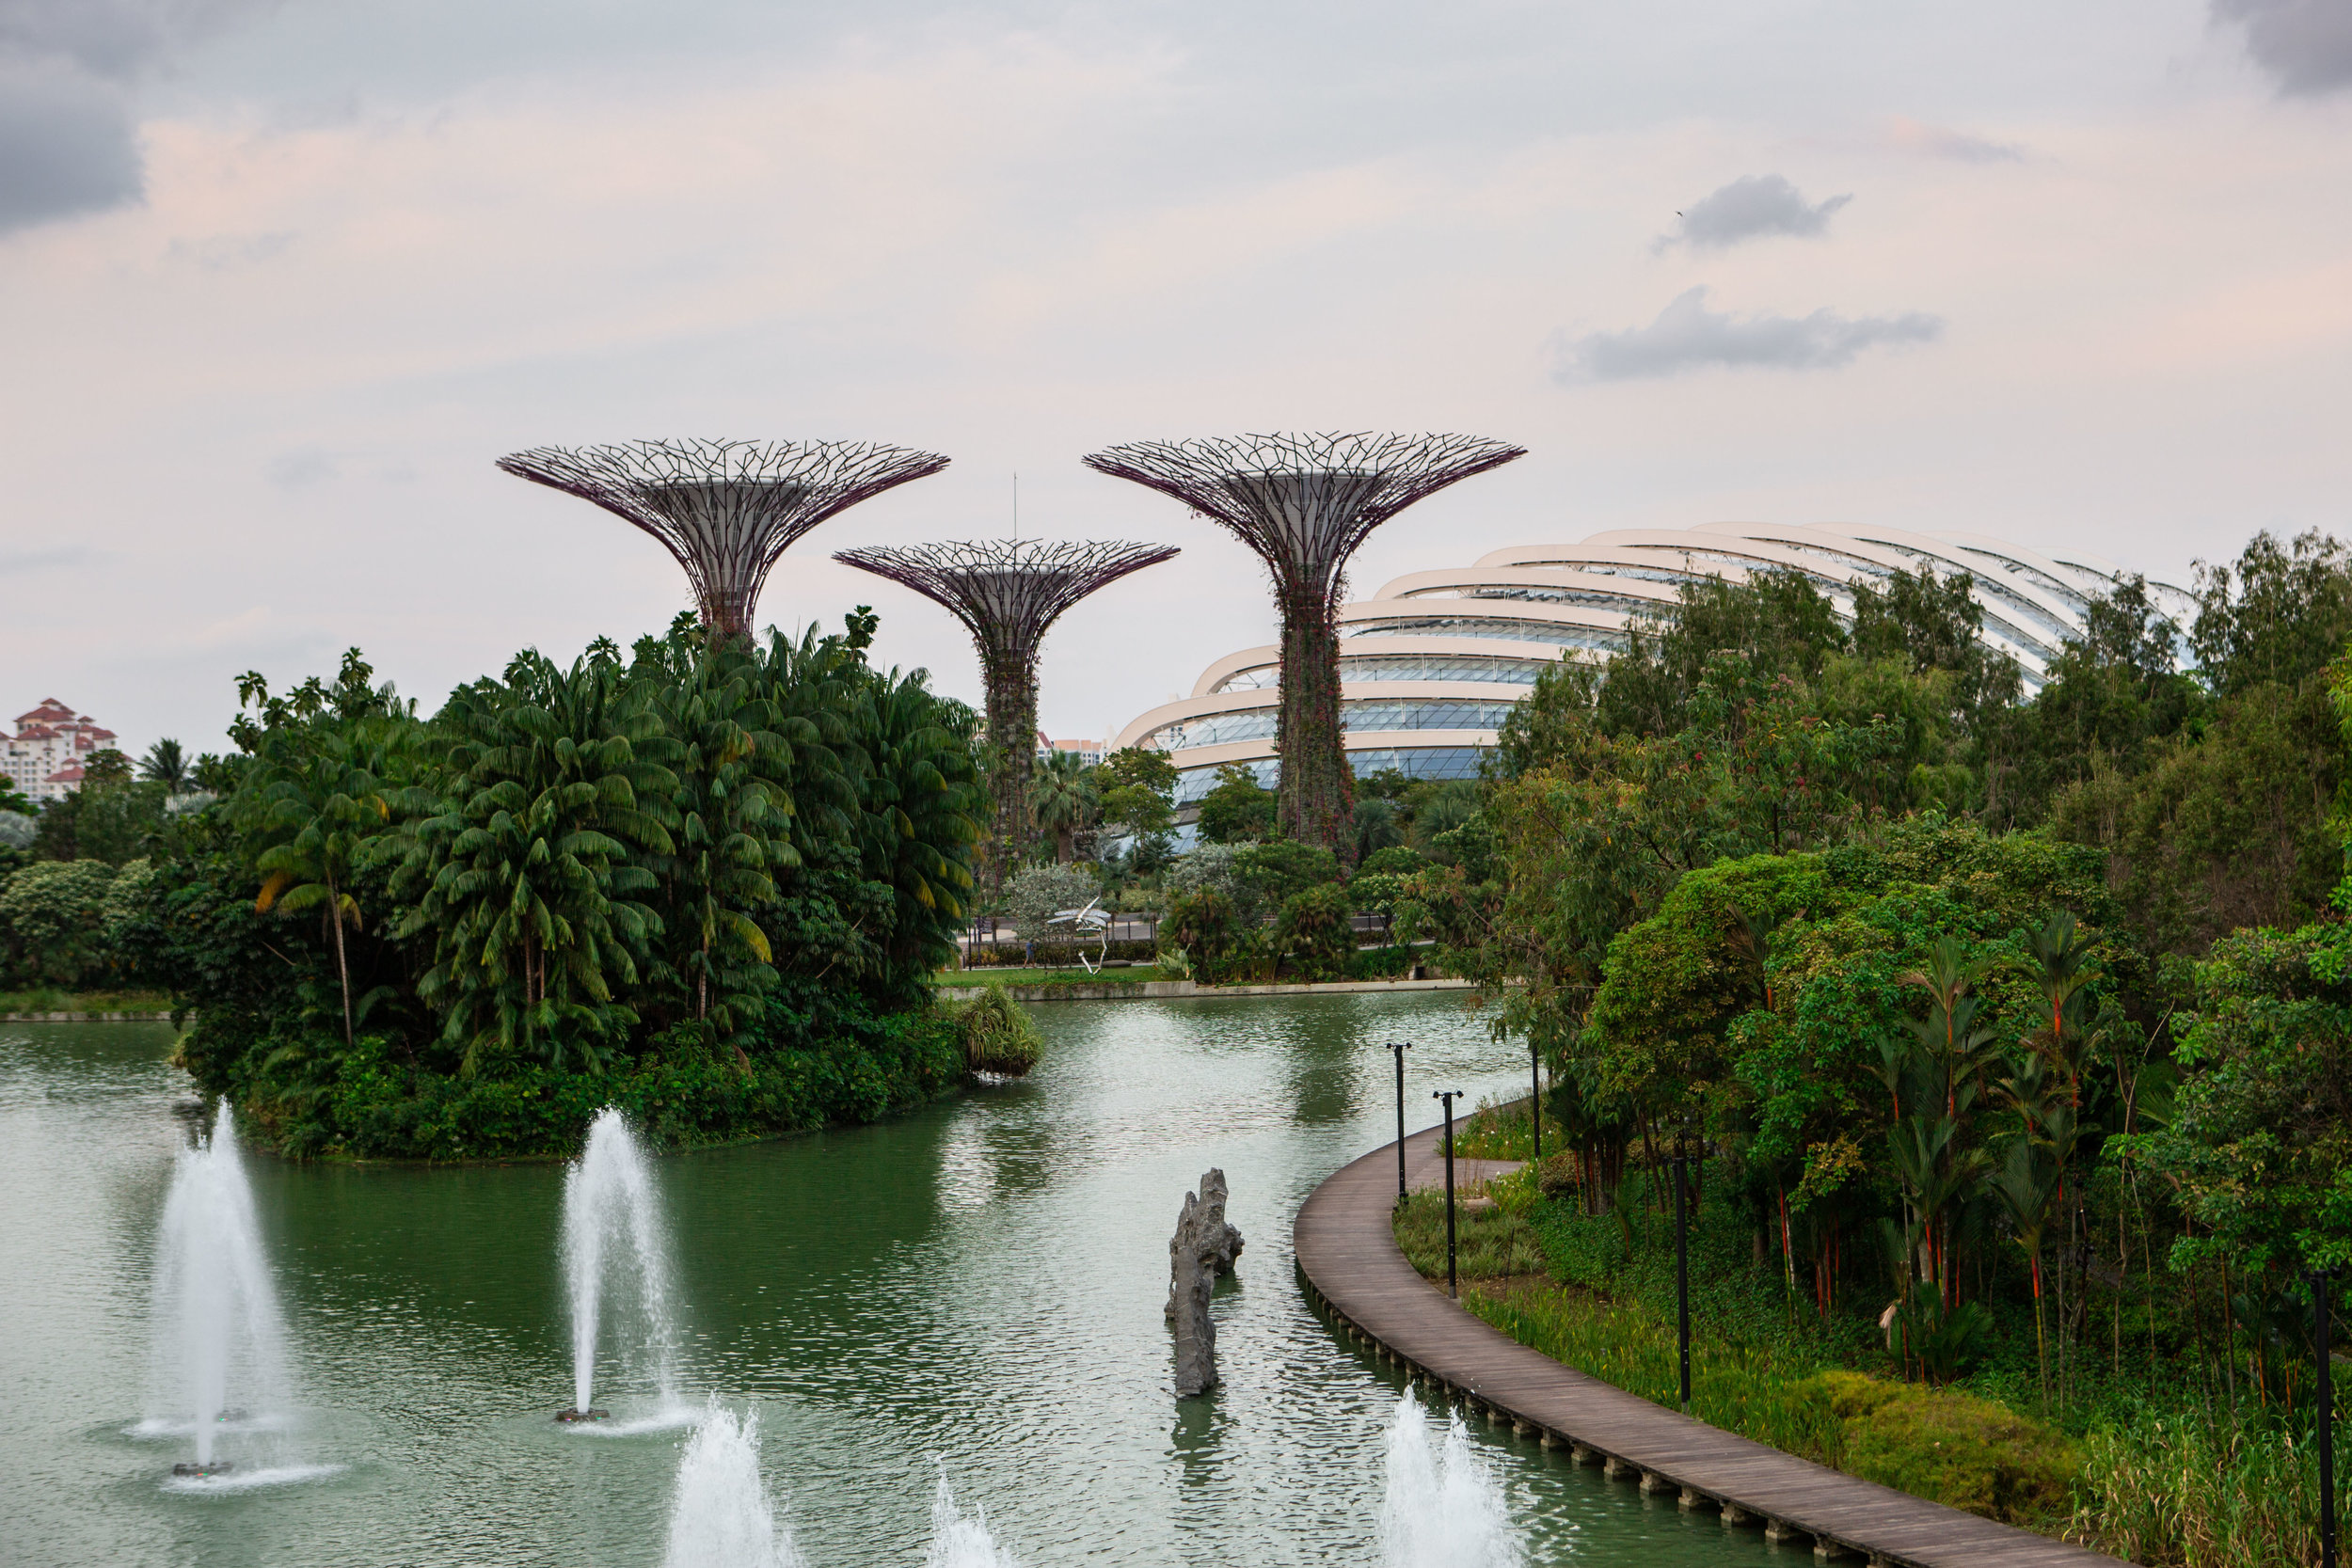 Singapore Garden's by the bay